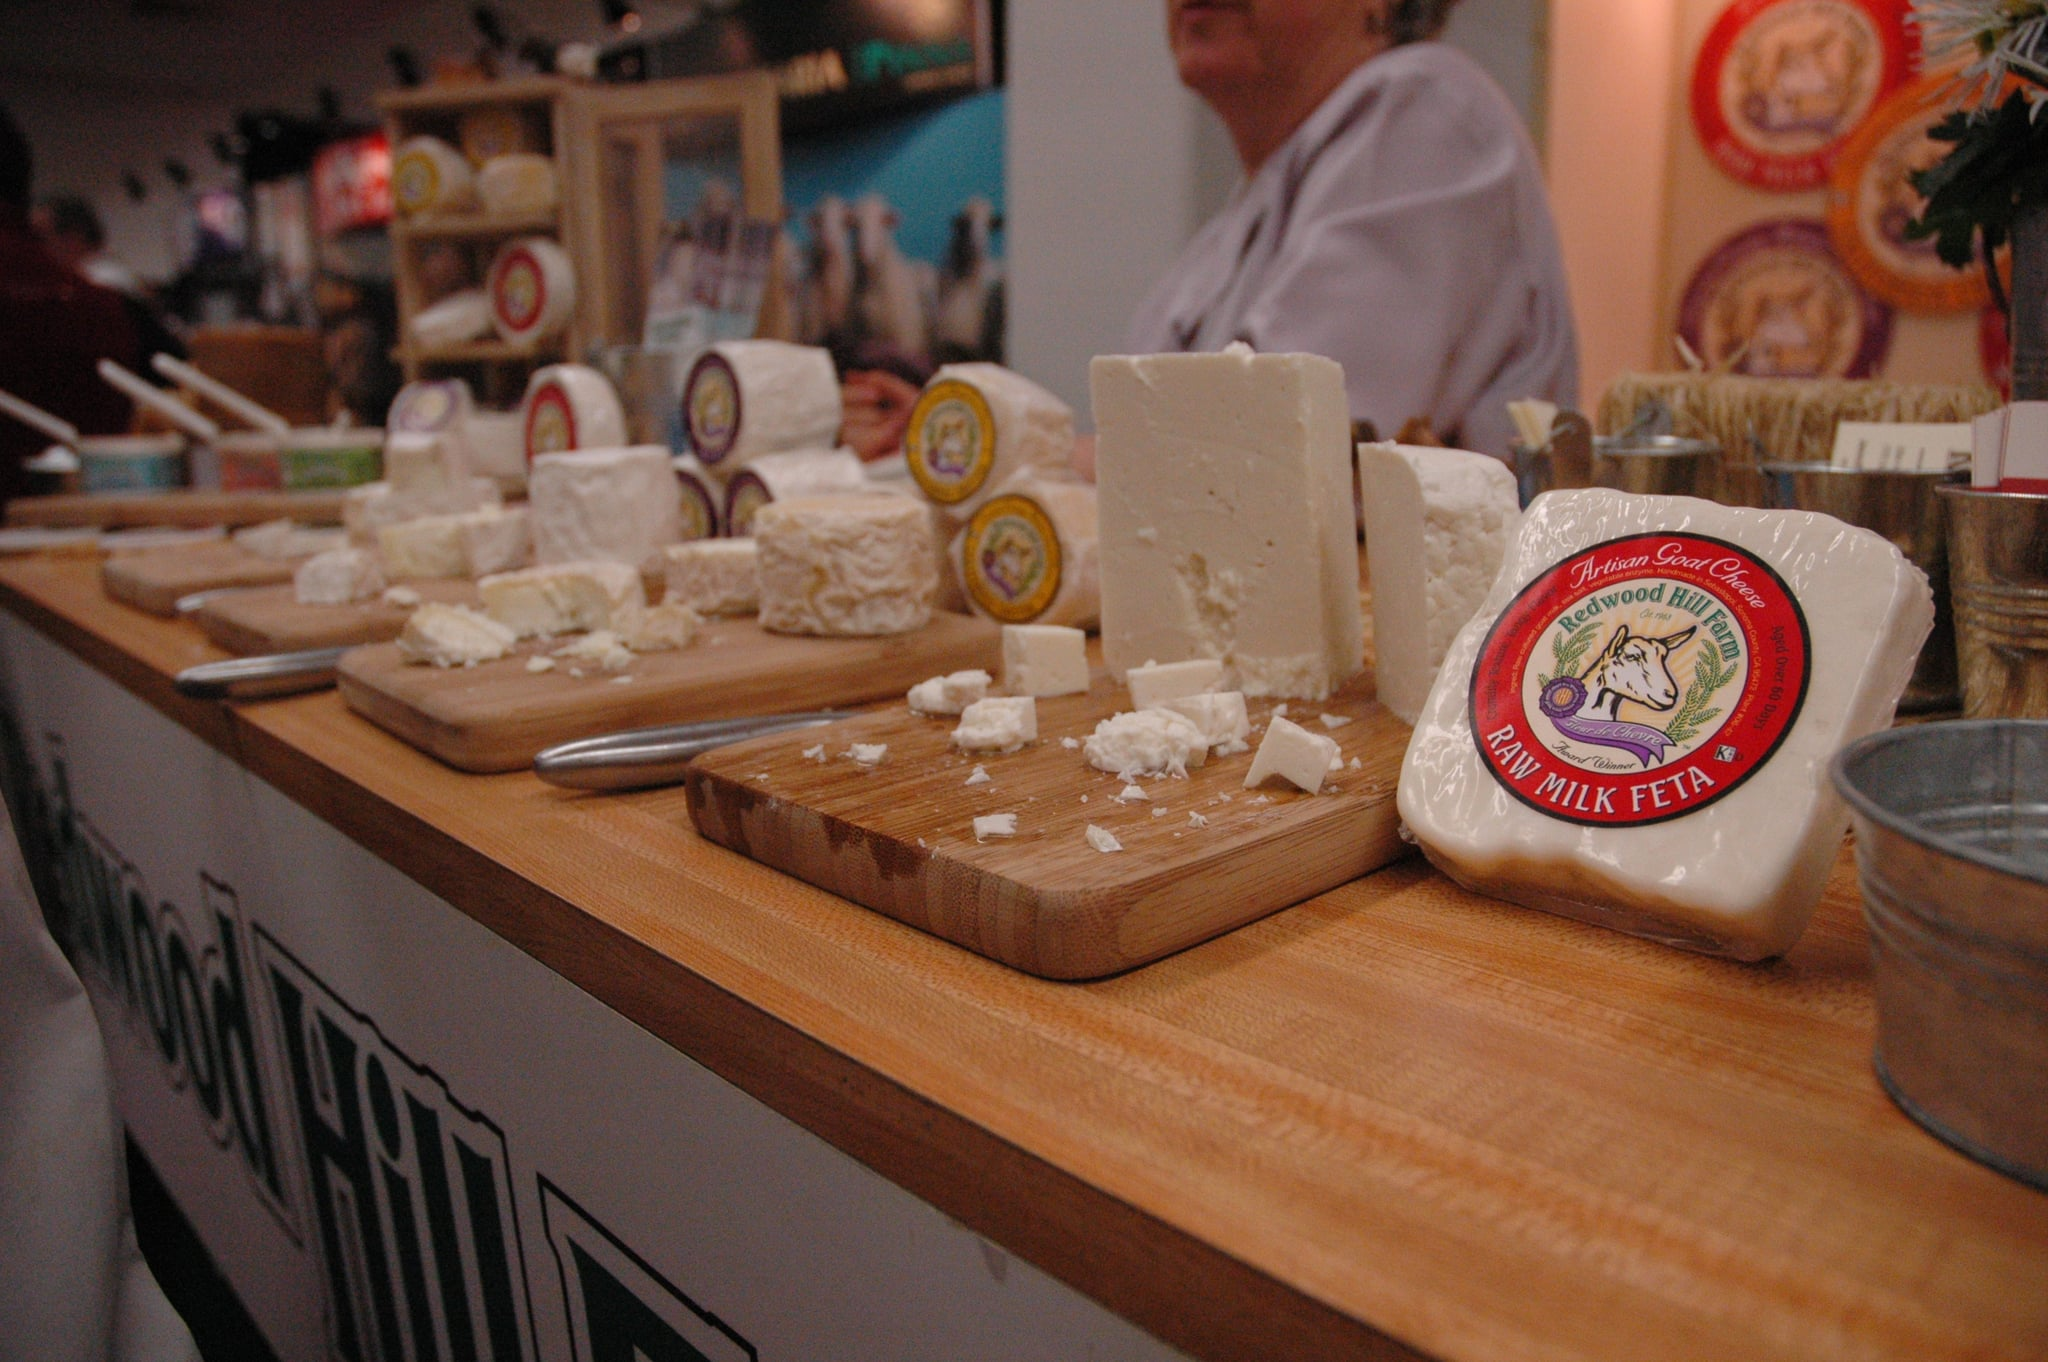 2007 Winter Fancy Food Show - Part 2 (Goat Cheese!)